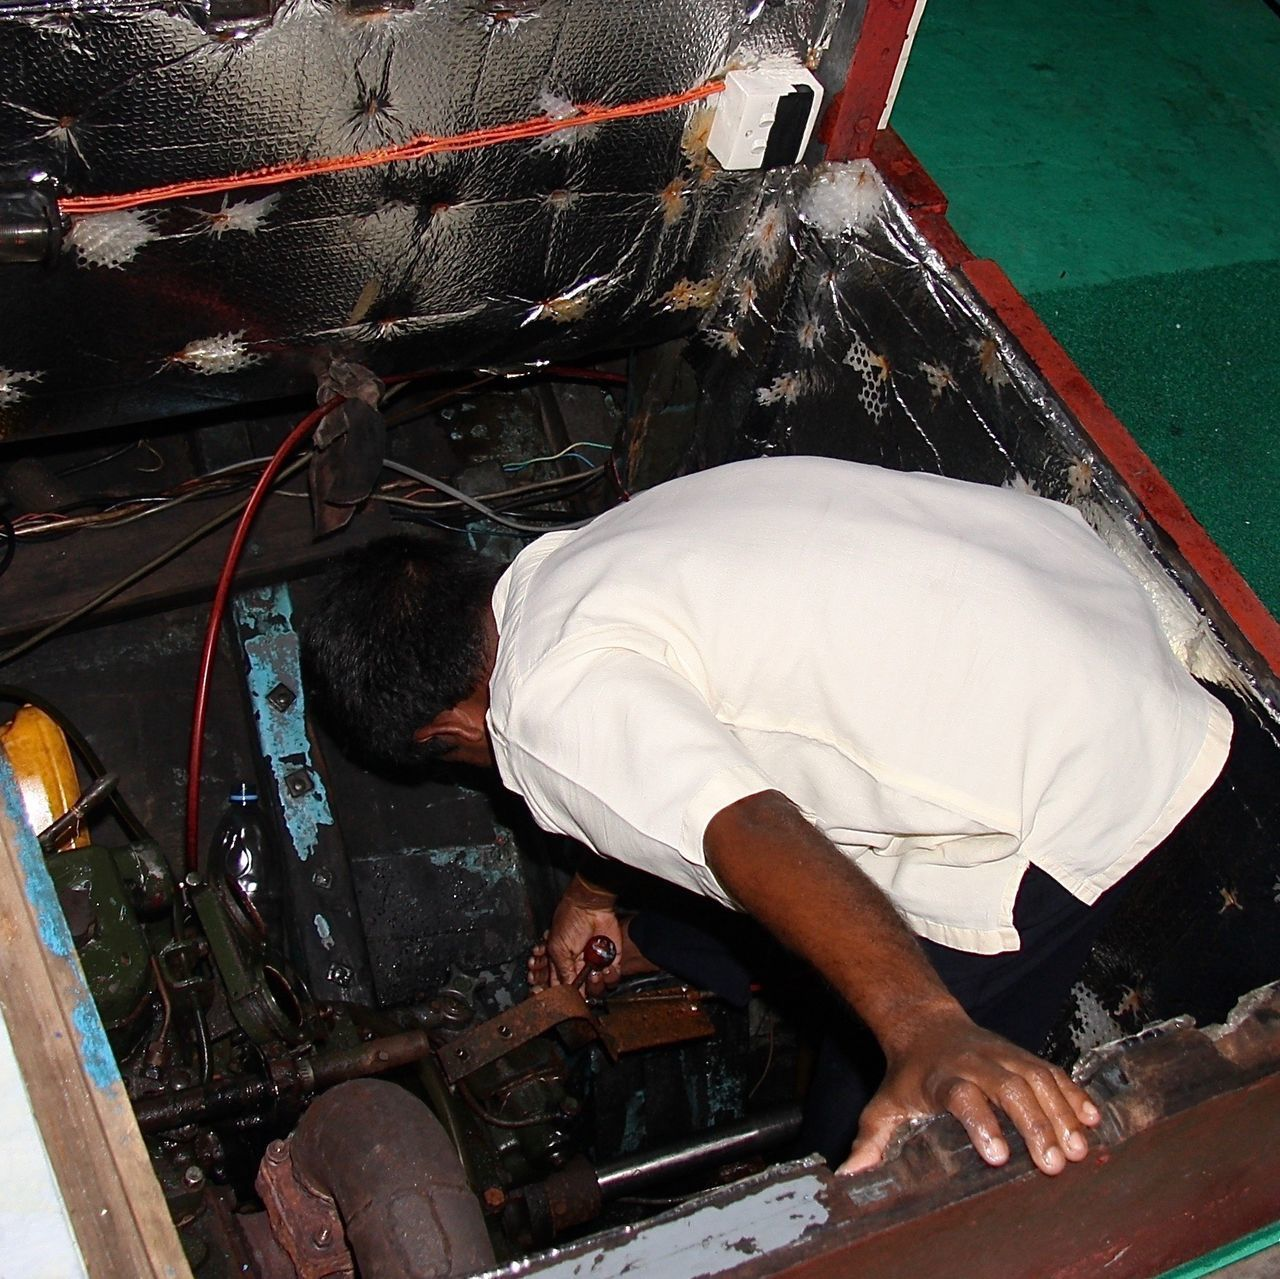 Skipper looking at Motor in traditional Dhoni Boat Outdoors Manual Worker Repairing Working People One Man Only Dhoni Traditional Boat Business Sea Travel Maldives Environment Indian Ocean Colors Technology Motor Journey Transportation Design Man People And Places